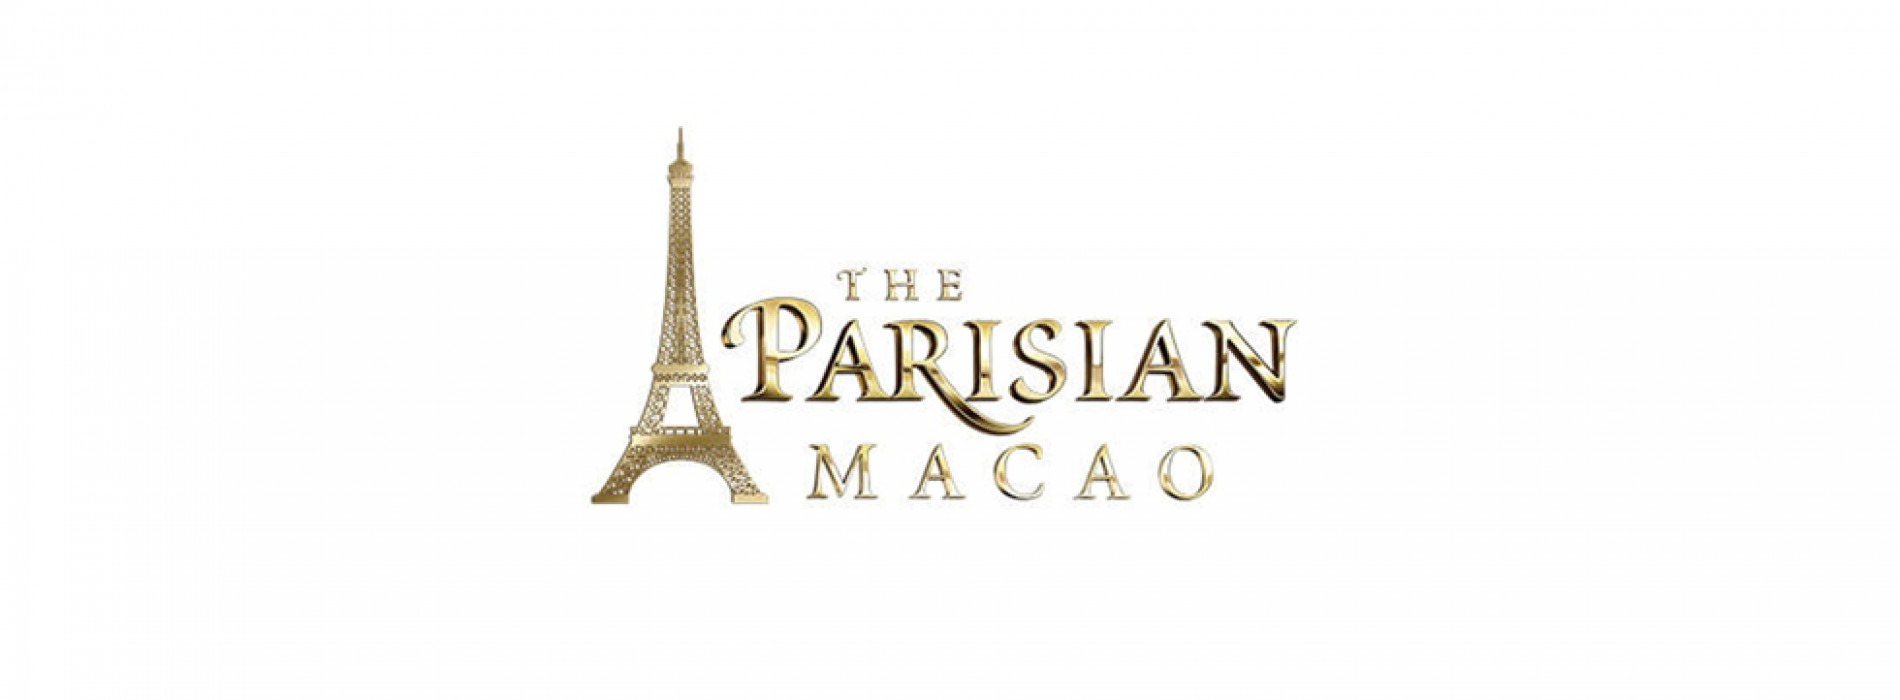 Newly opened The Parisian Macao to host 5th MICE India & Luxury Travel Congress